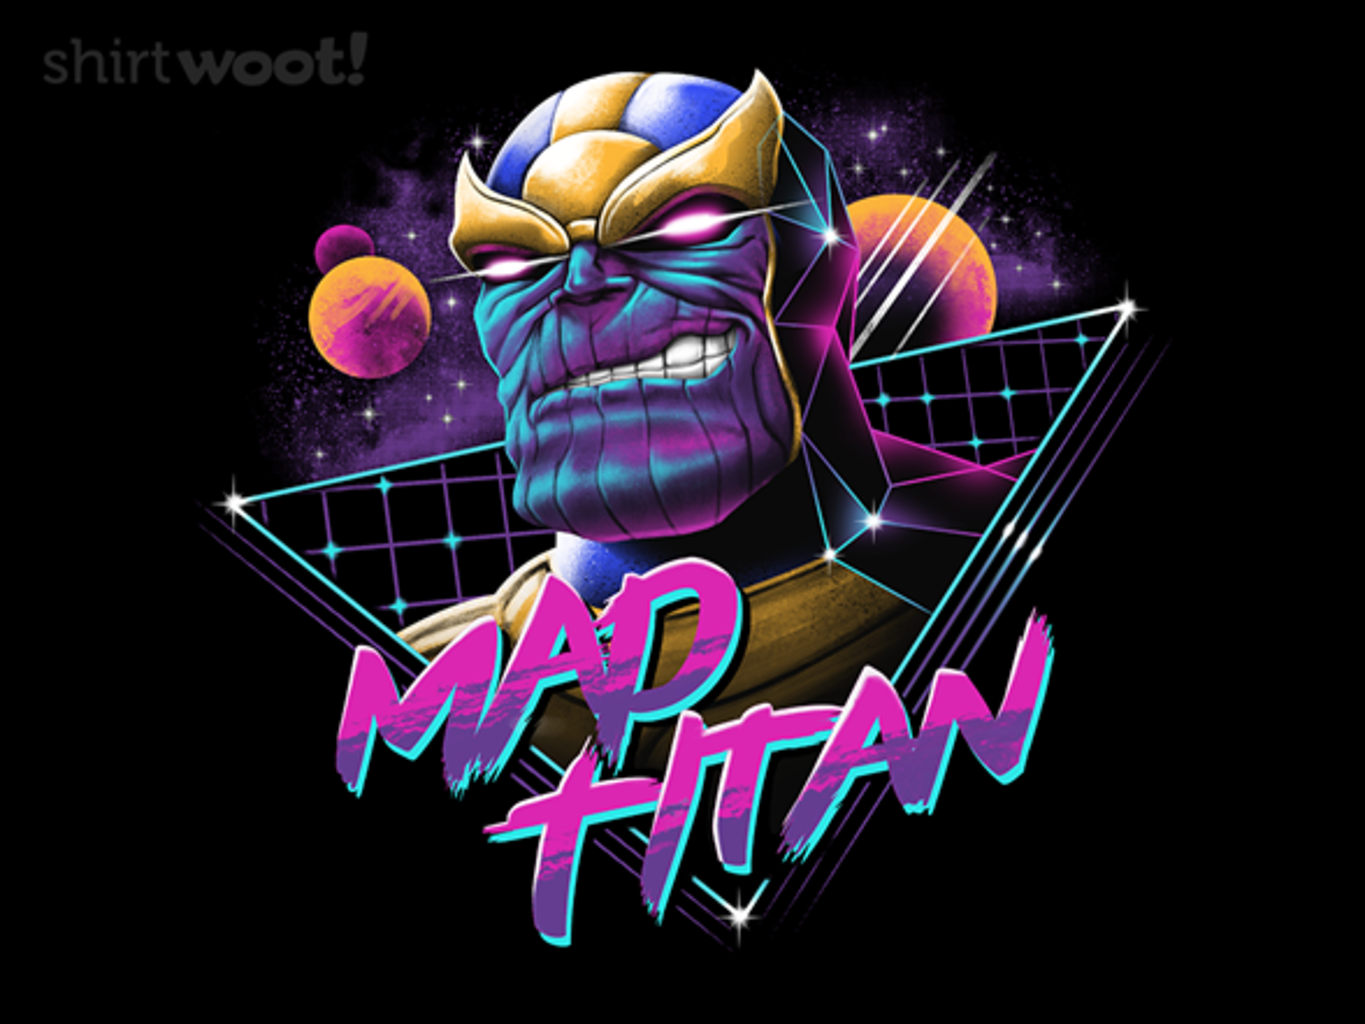 Woot!: Rad Mad Titan